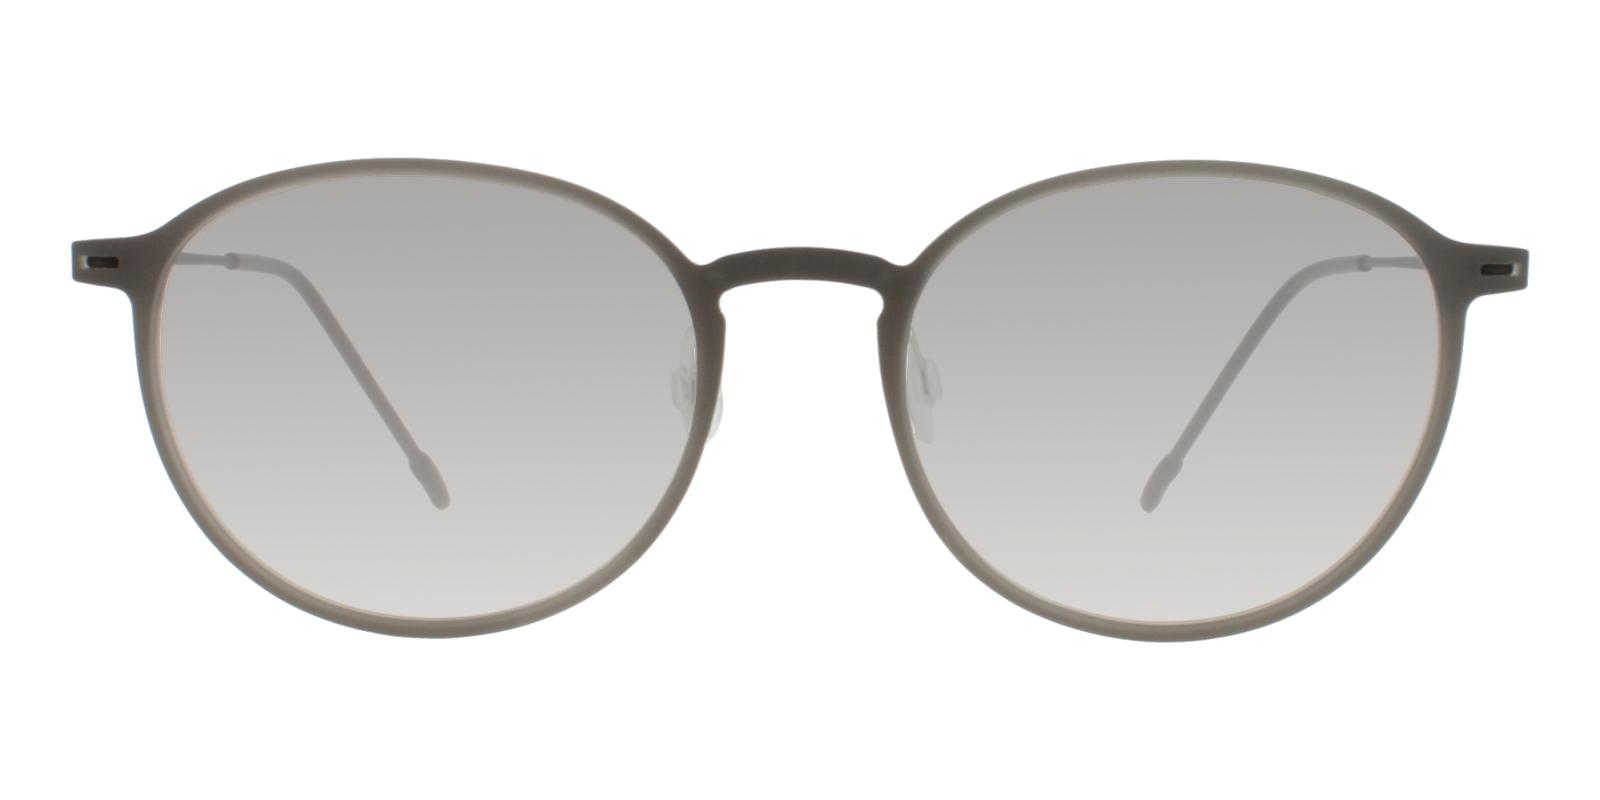 Gambia Gray Combination Eyeglasses , Lightweight , NosePads Frames from ABBE Glasses